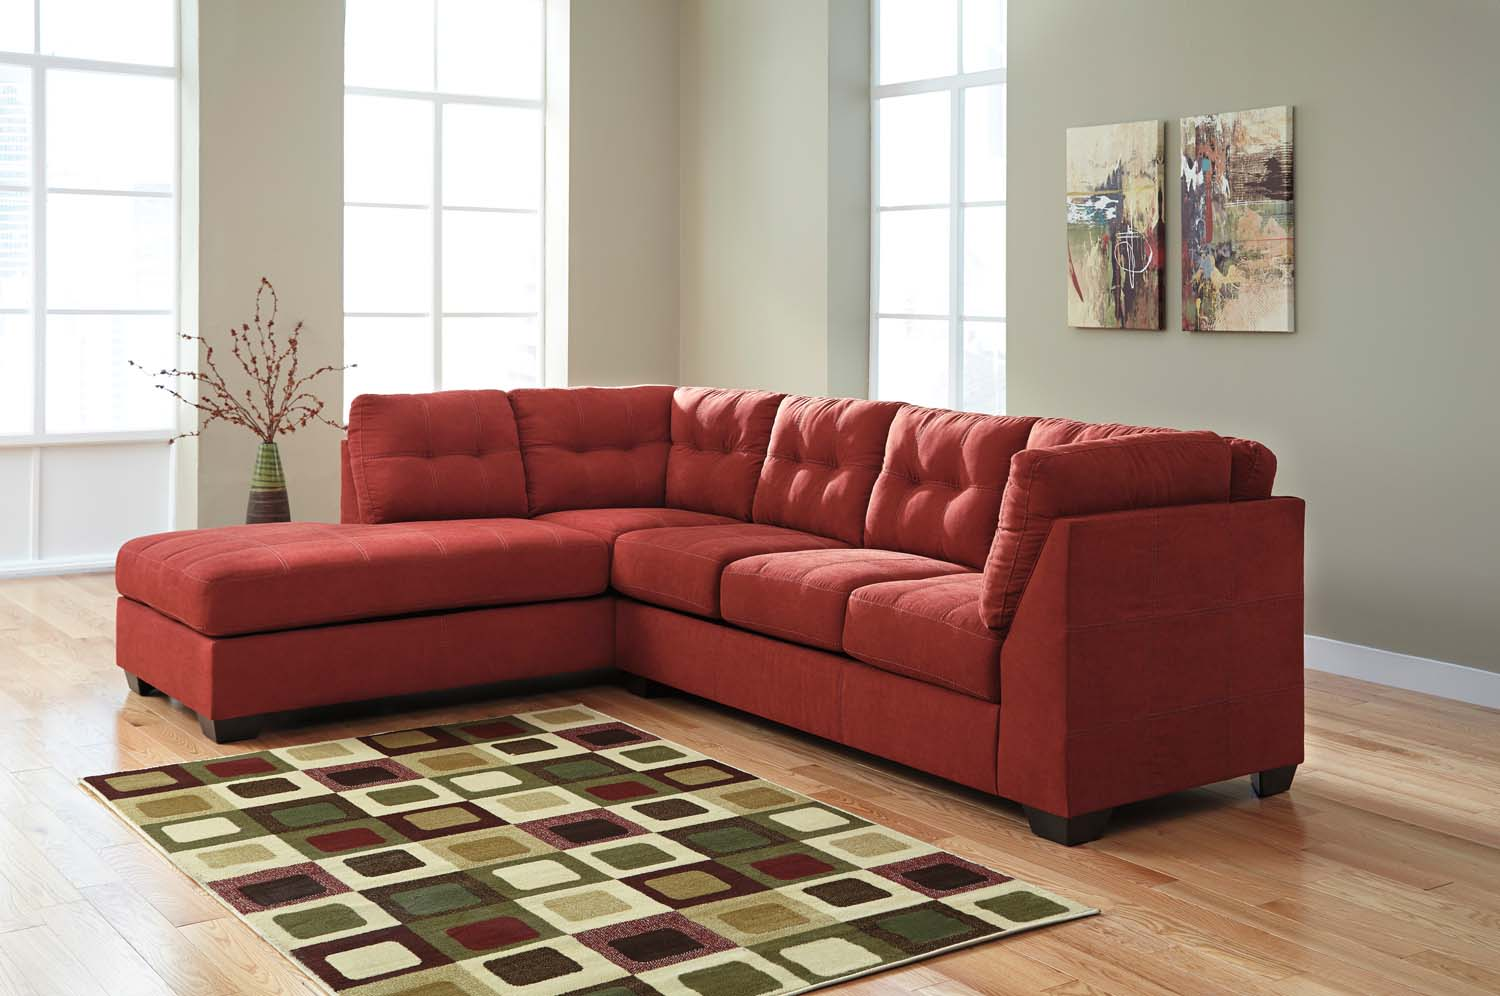 Maier   Sienna 2 Piece Sectional